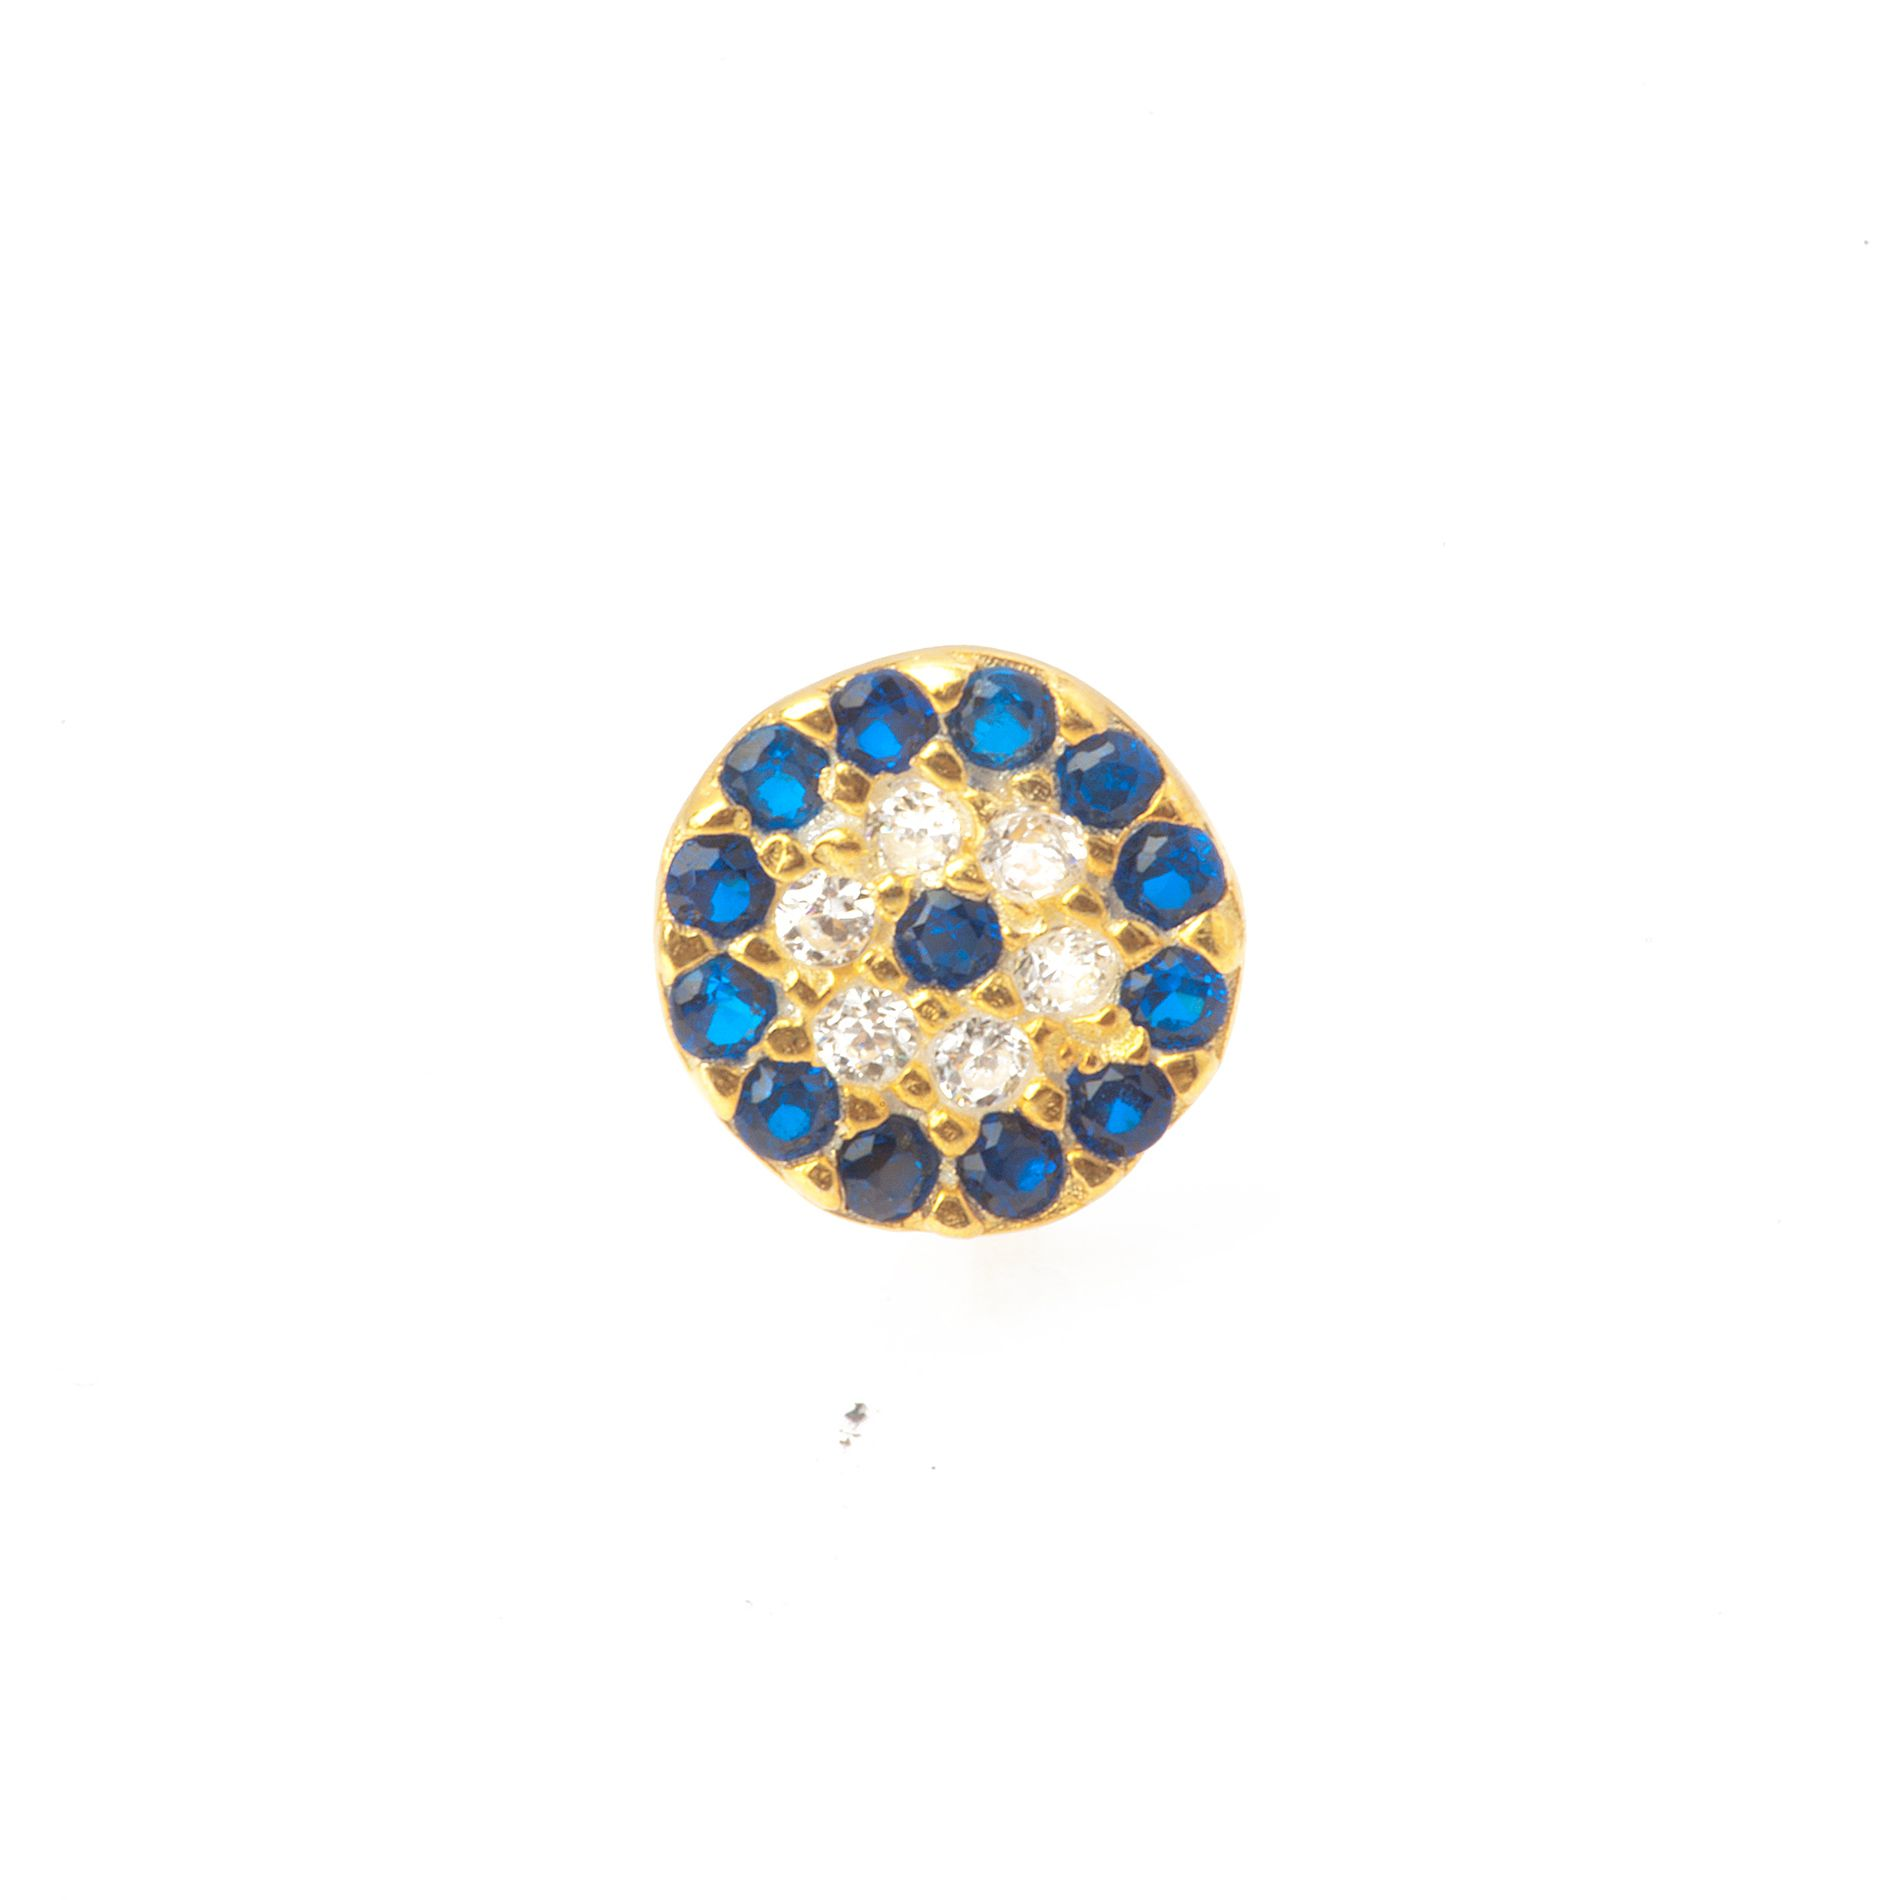 Classic evil eye stud earrings